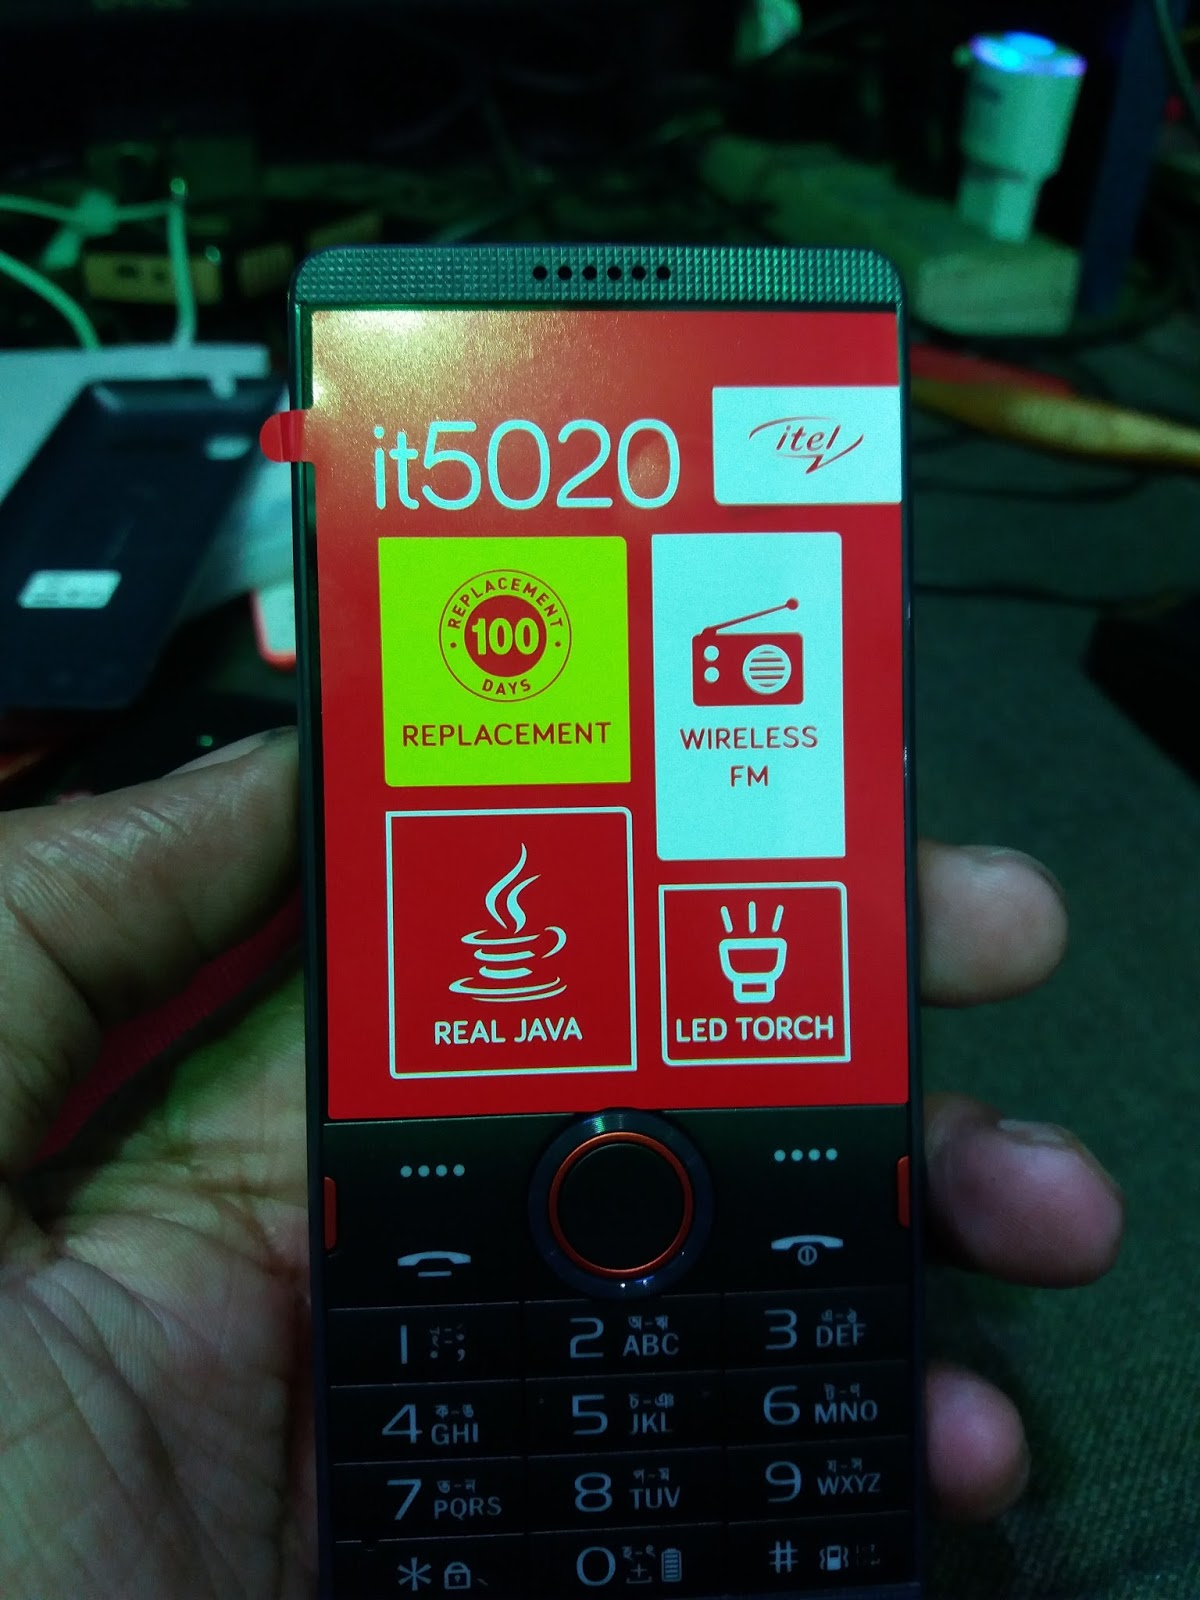 Itel It5020 Password